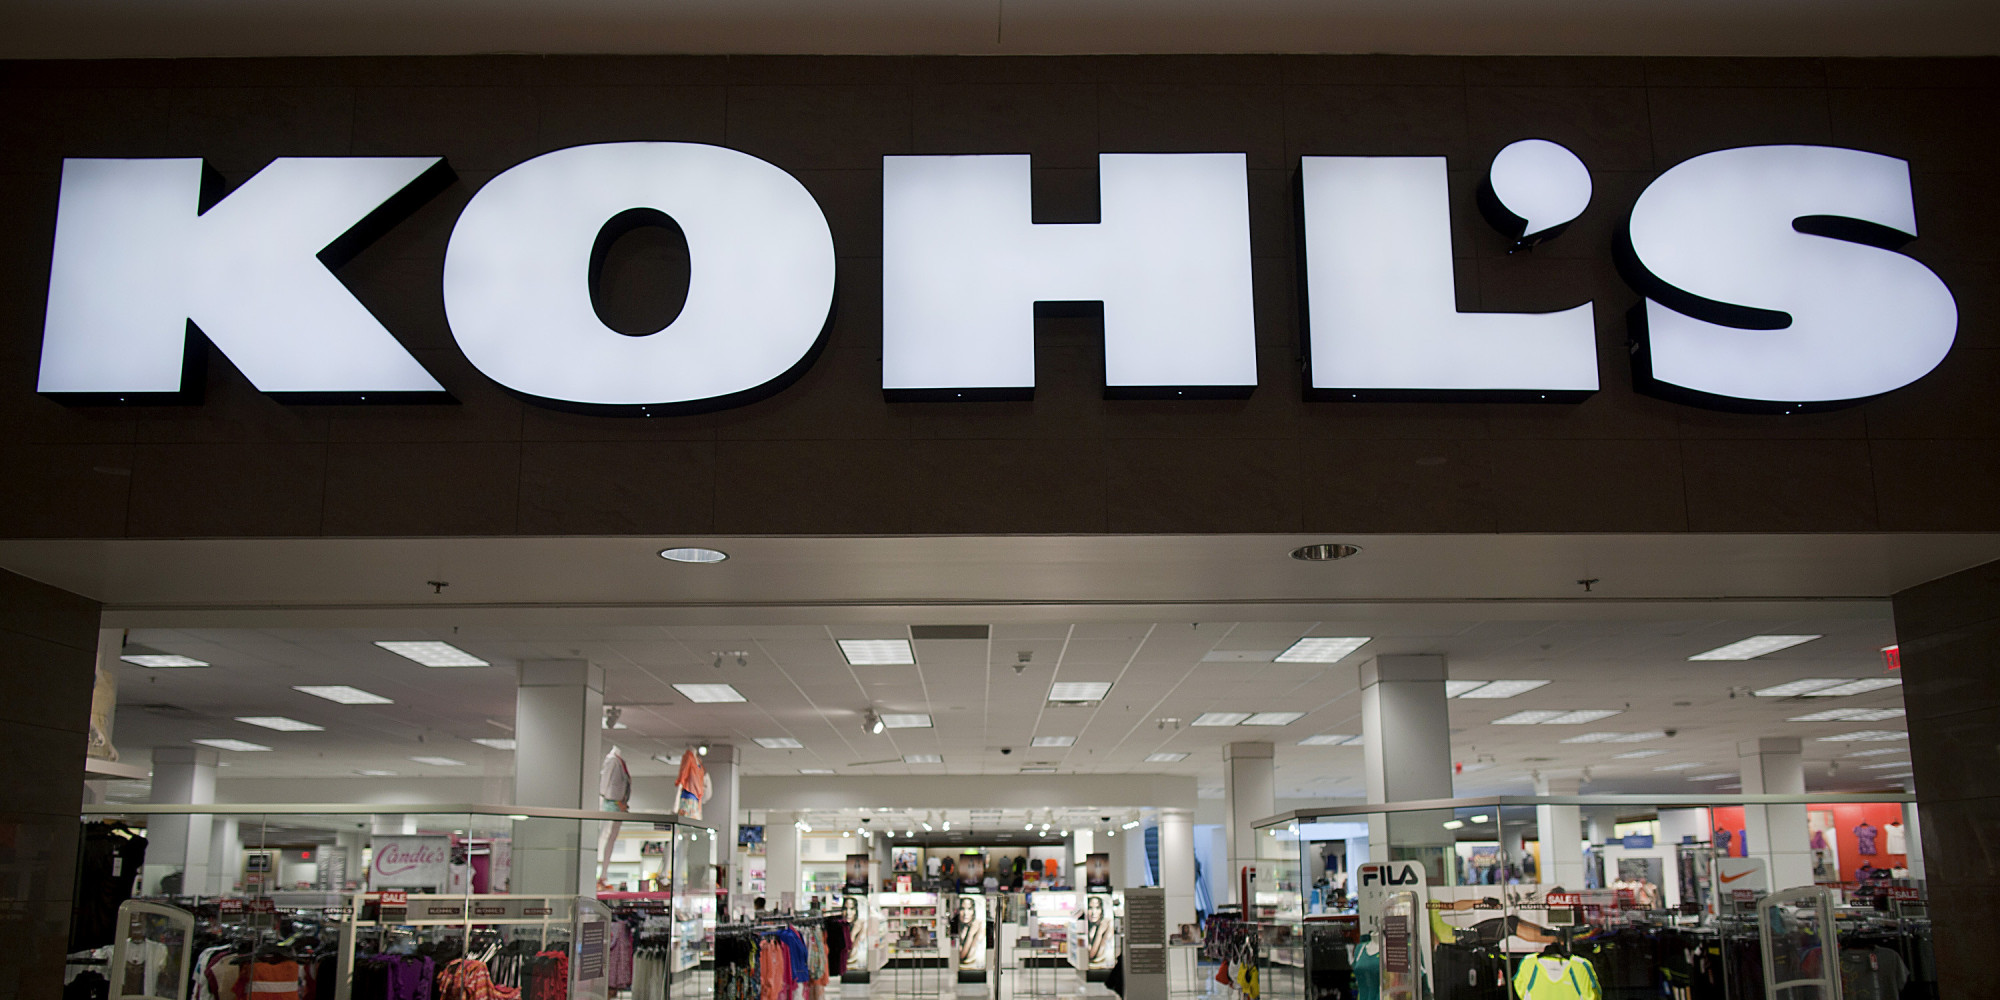 Kohl's is the largest department store in the nation, and with frequent promotions, deals and coupons, you can really save big! Join Kohl's Rewards for free to earn points with every dollar you spend and you'll get a $5 gift certificate when you reach points.